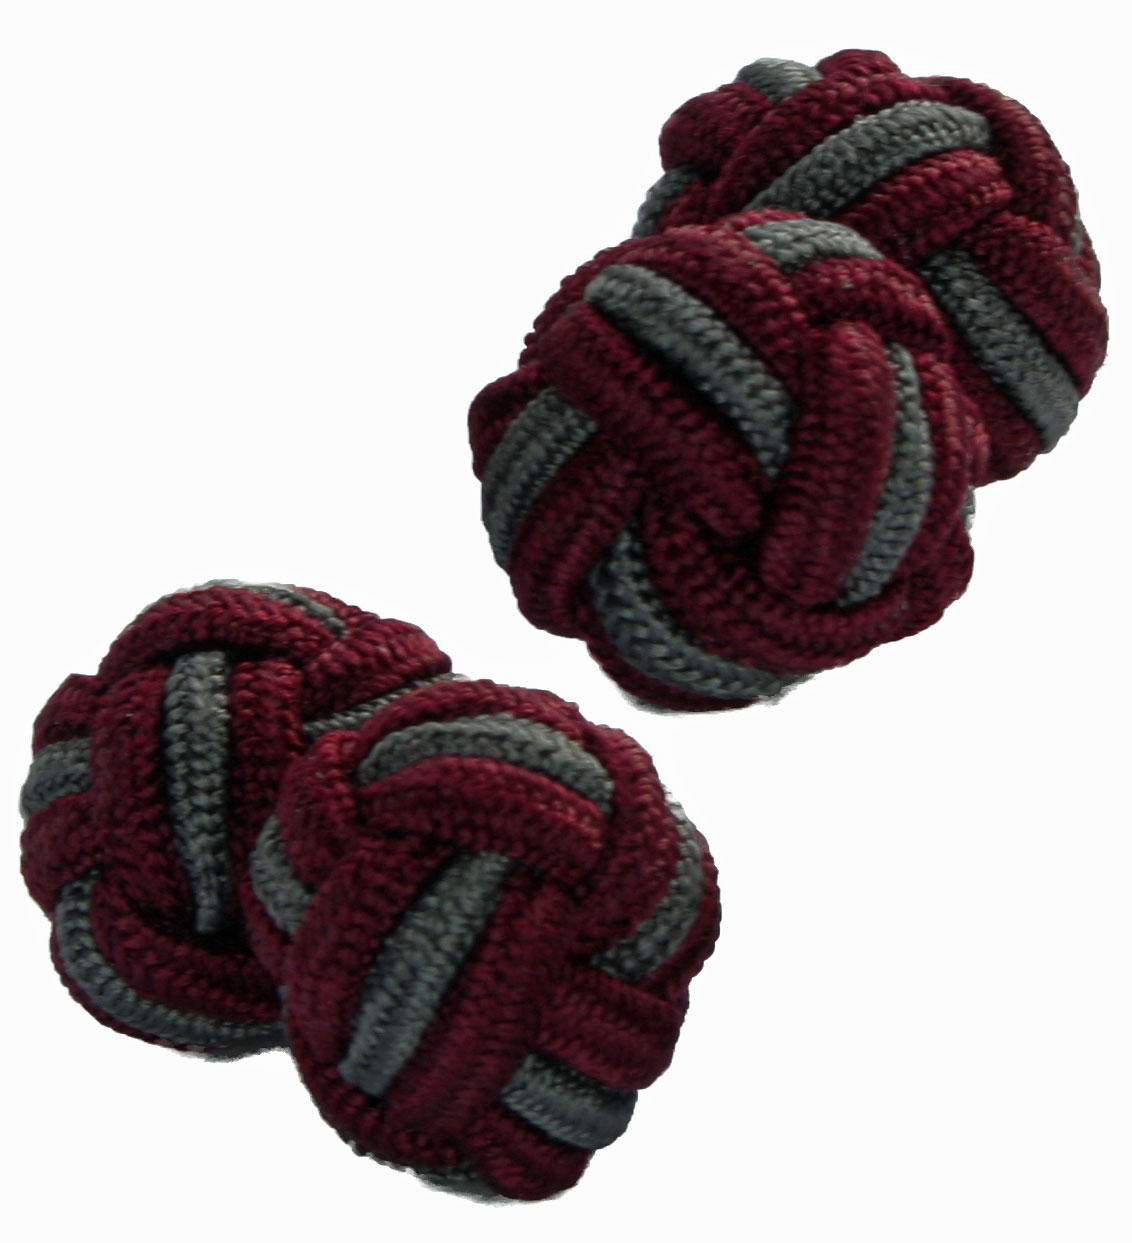 Maroon and Grey Silk Knot Cufflinks from Cuffs & Co